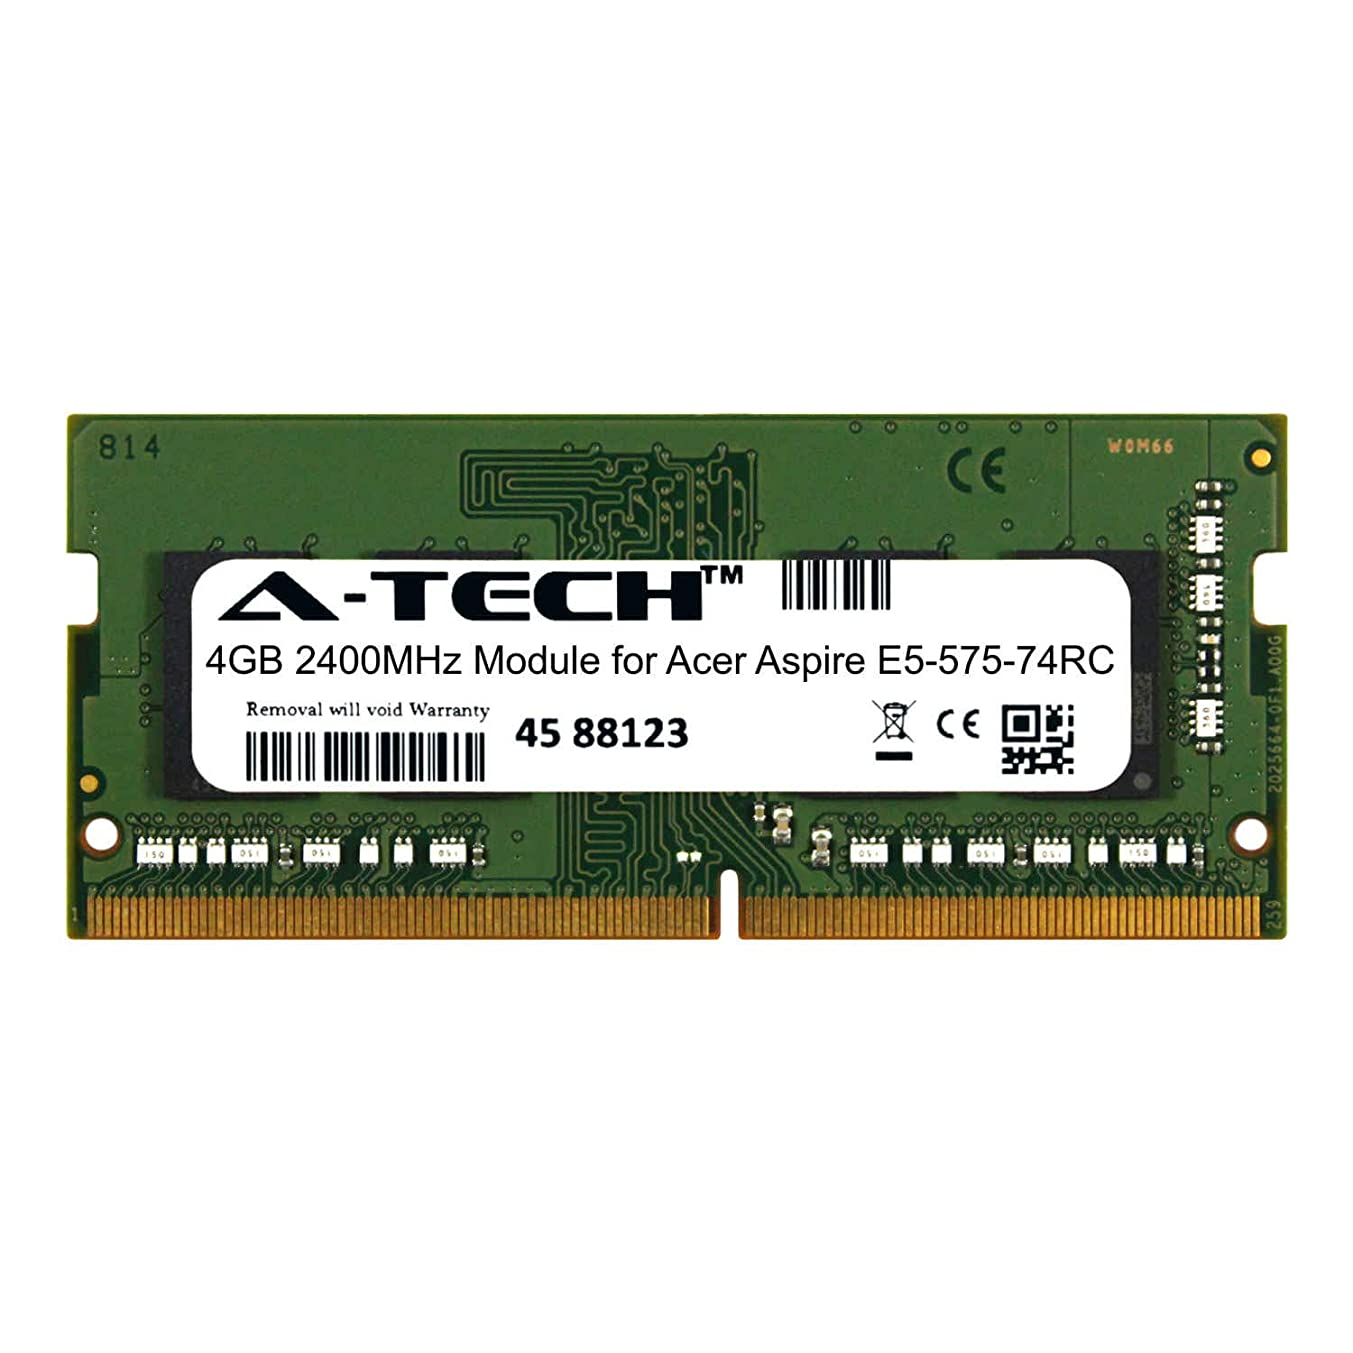 A-Tech 4GB Module for Acer Aspire E5-575-74RC Laptop & Notebook Compatible DDR4 2400Mhz Memory Ram (ATMS267447A25824X1)